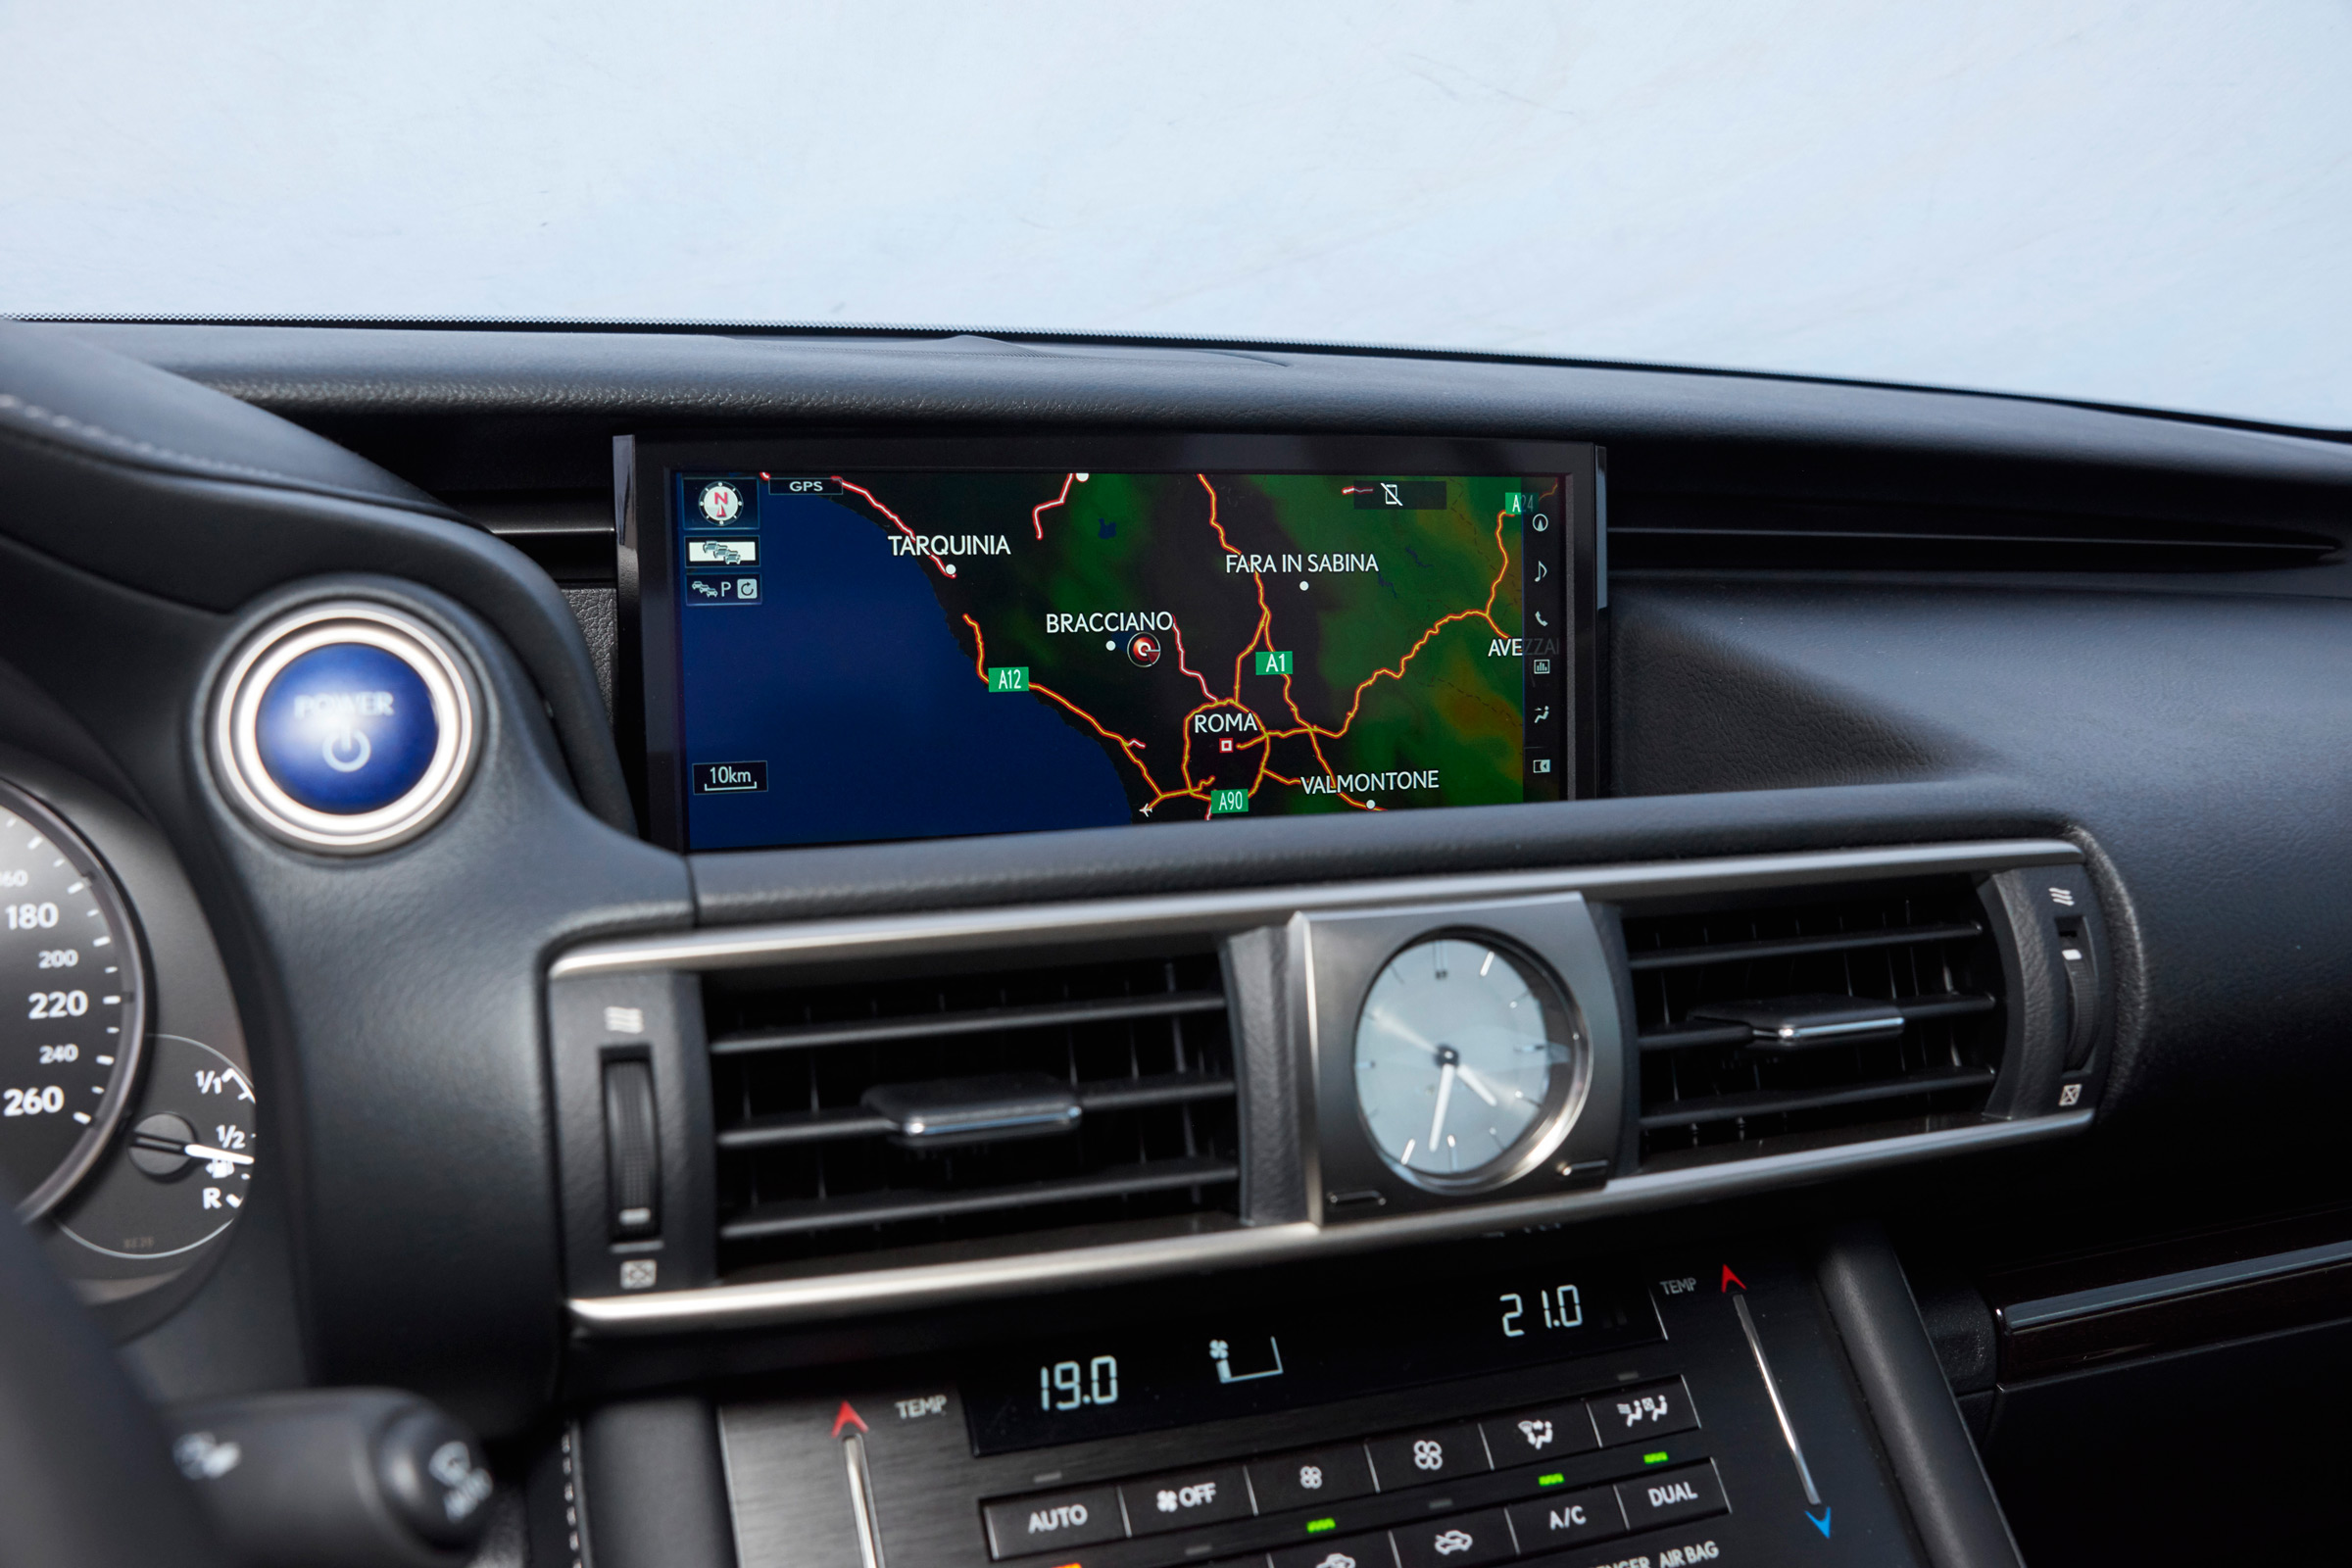 2017 Lexus IS 300h Interior View Center Headunit Screen (View 9 of 13)